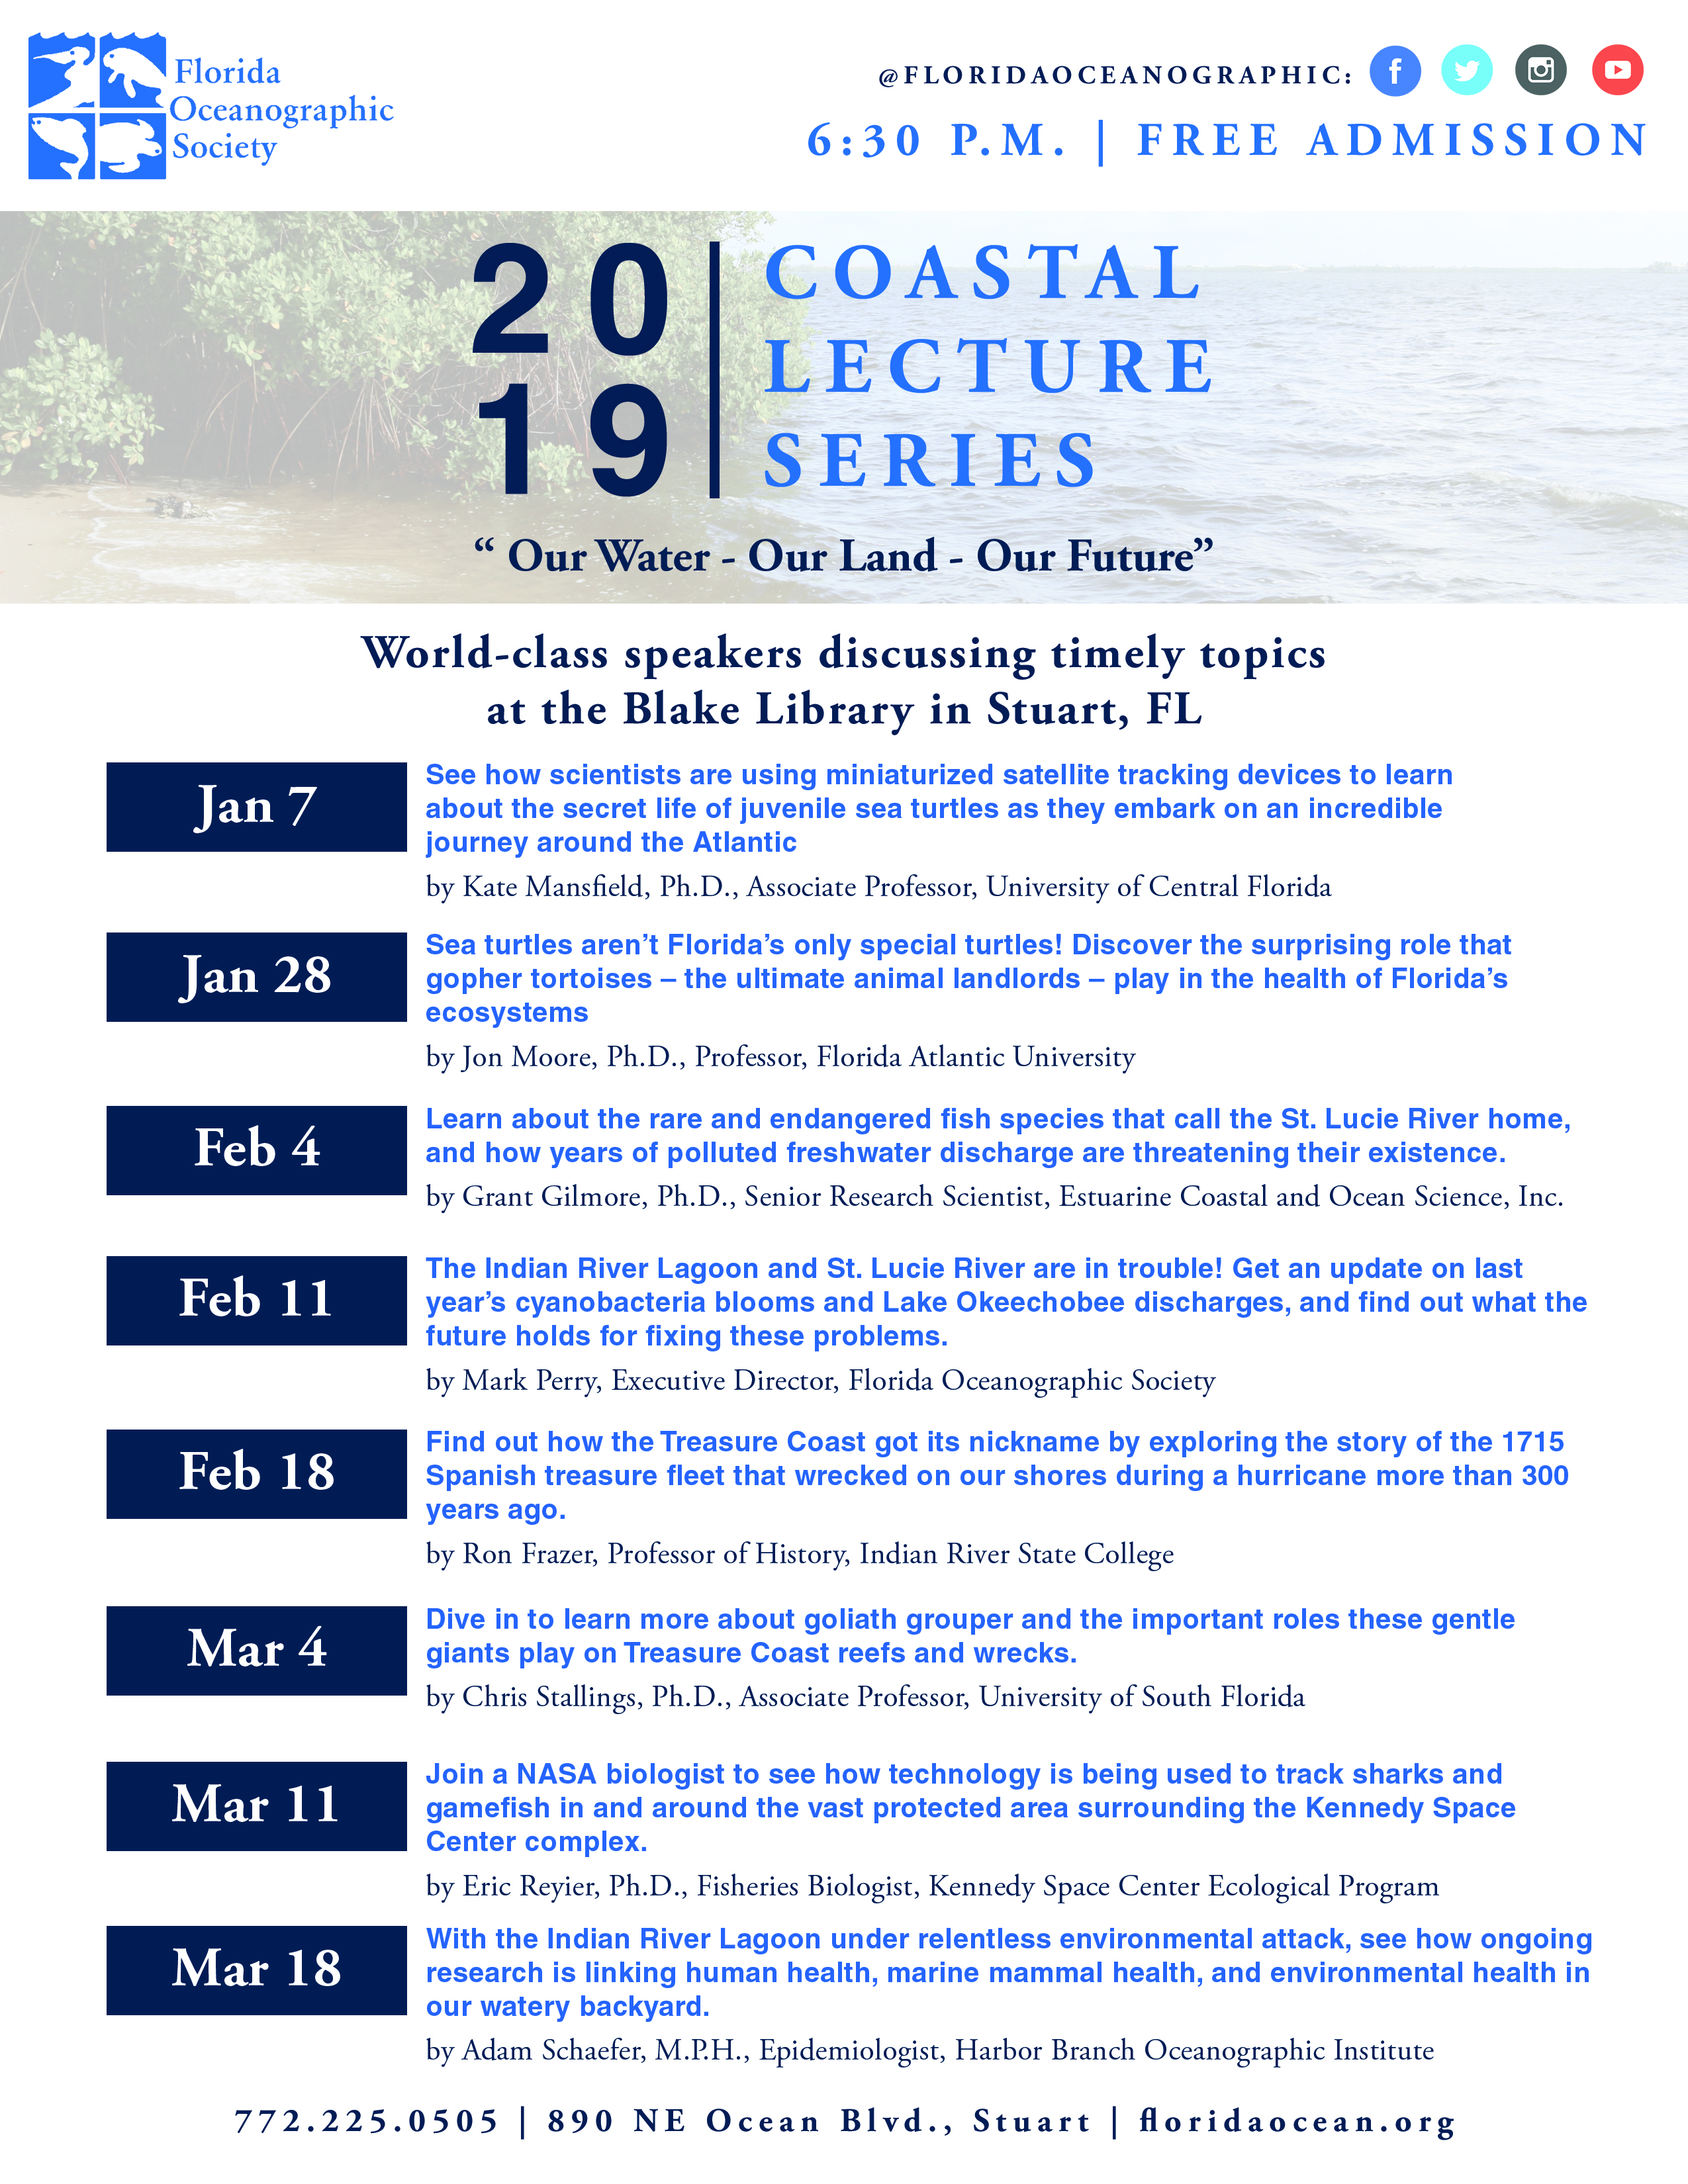 coastal lecture series flyer